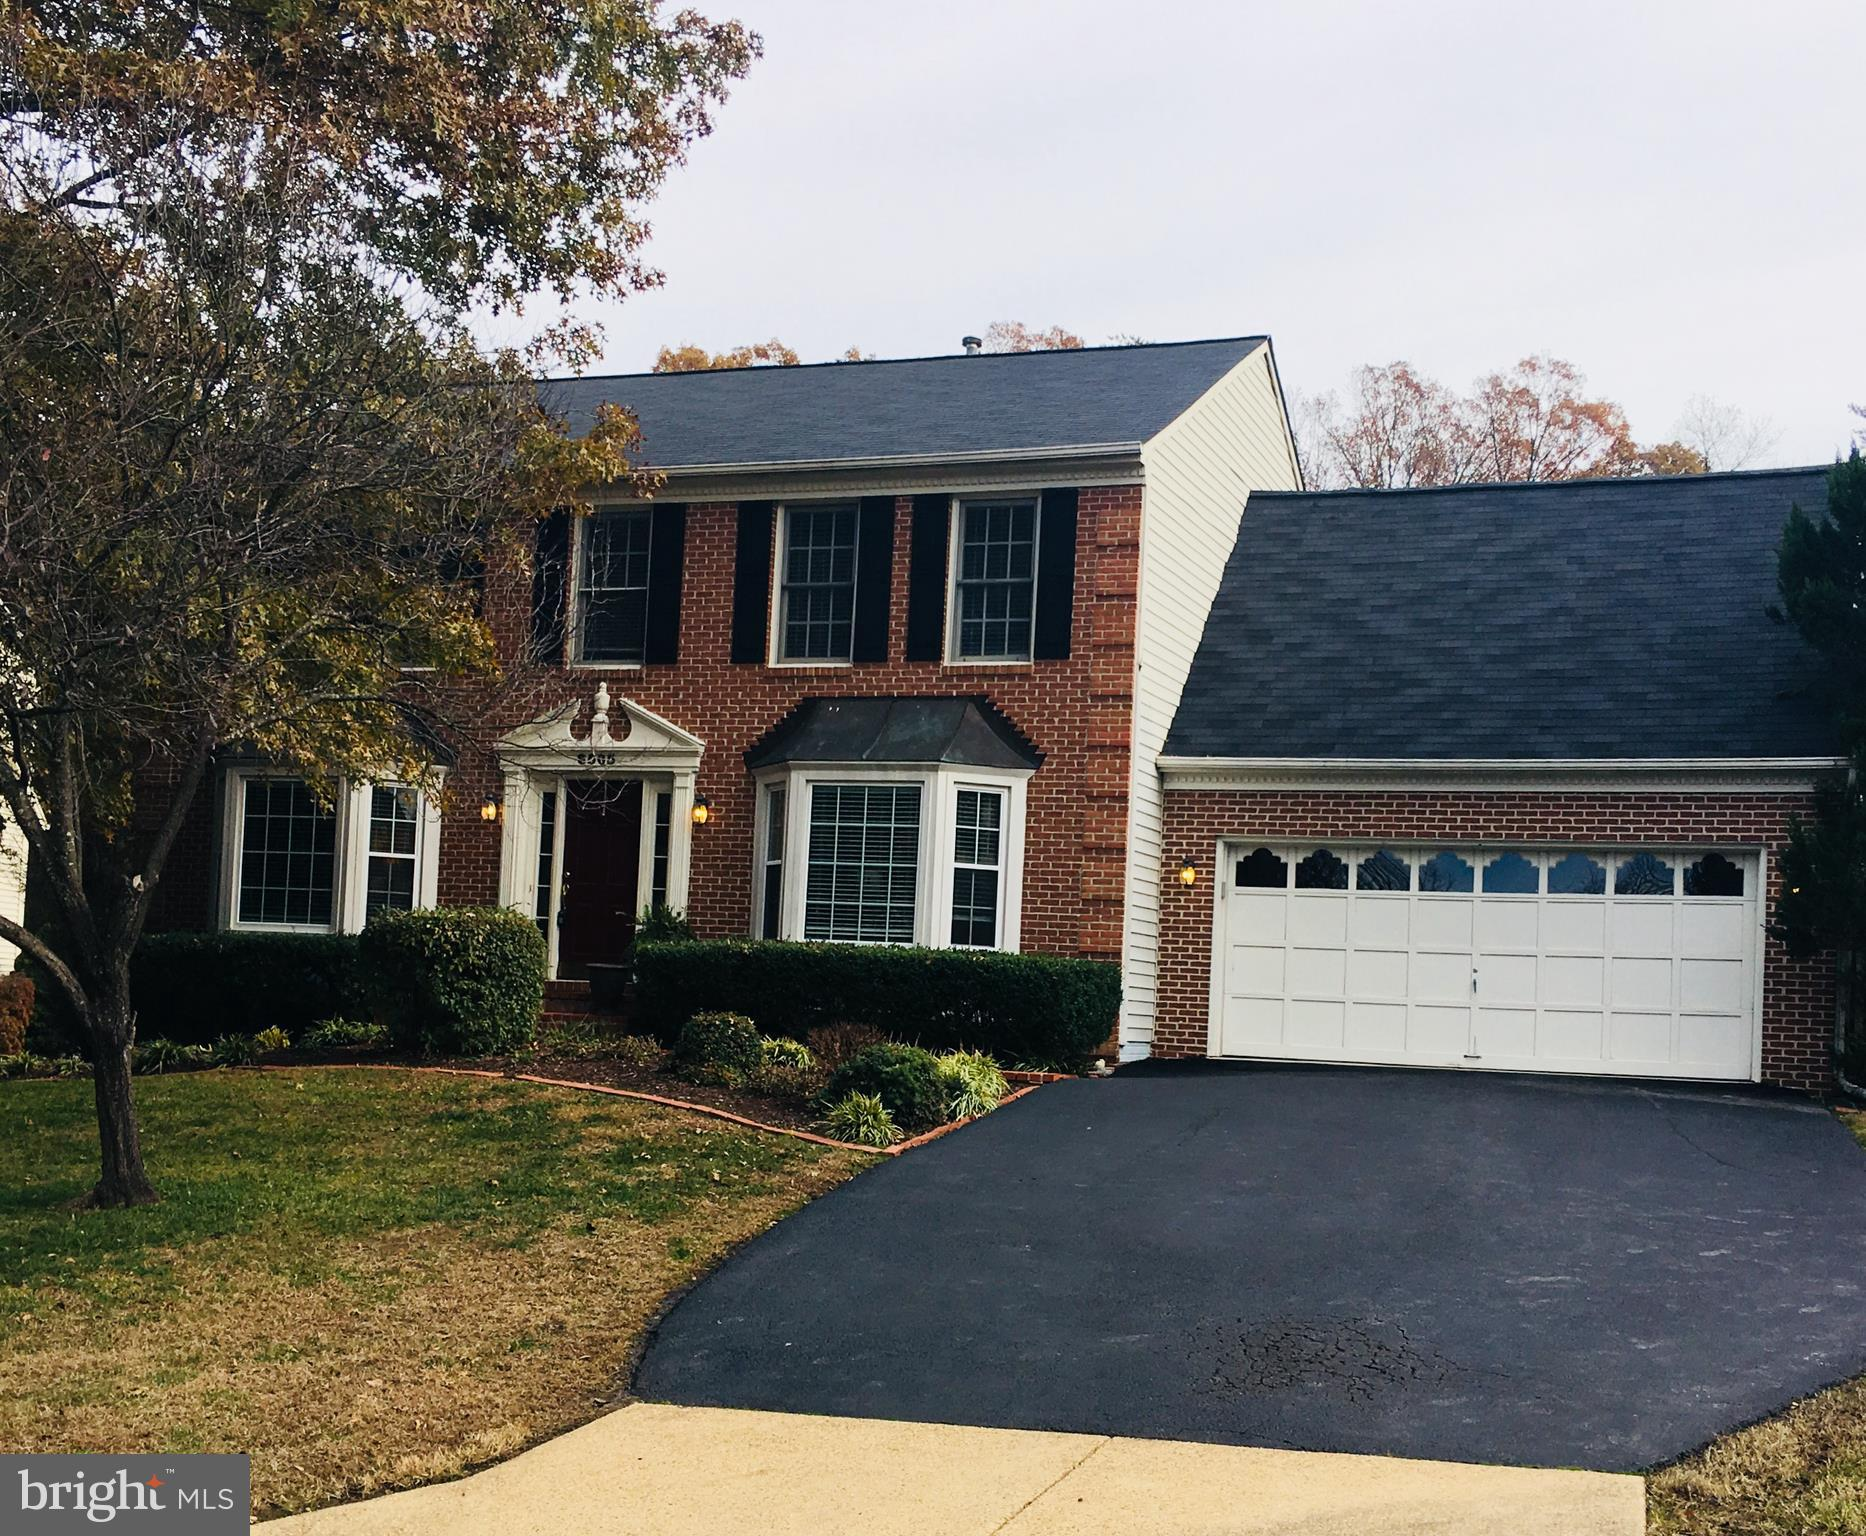 Lovely Colonial on a cul-de-sac lot moments to the Parkway.Large country kit w island opens to family rm w fpl & out to deck.  Master retreat w luxury bath & huge walk-in closet!  LL w rec rm area and den(or 5th bdrm).  Great neighborhood too!